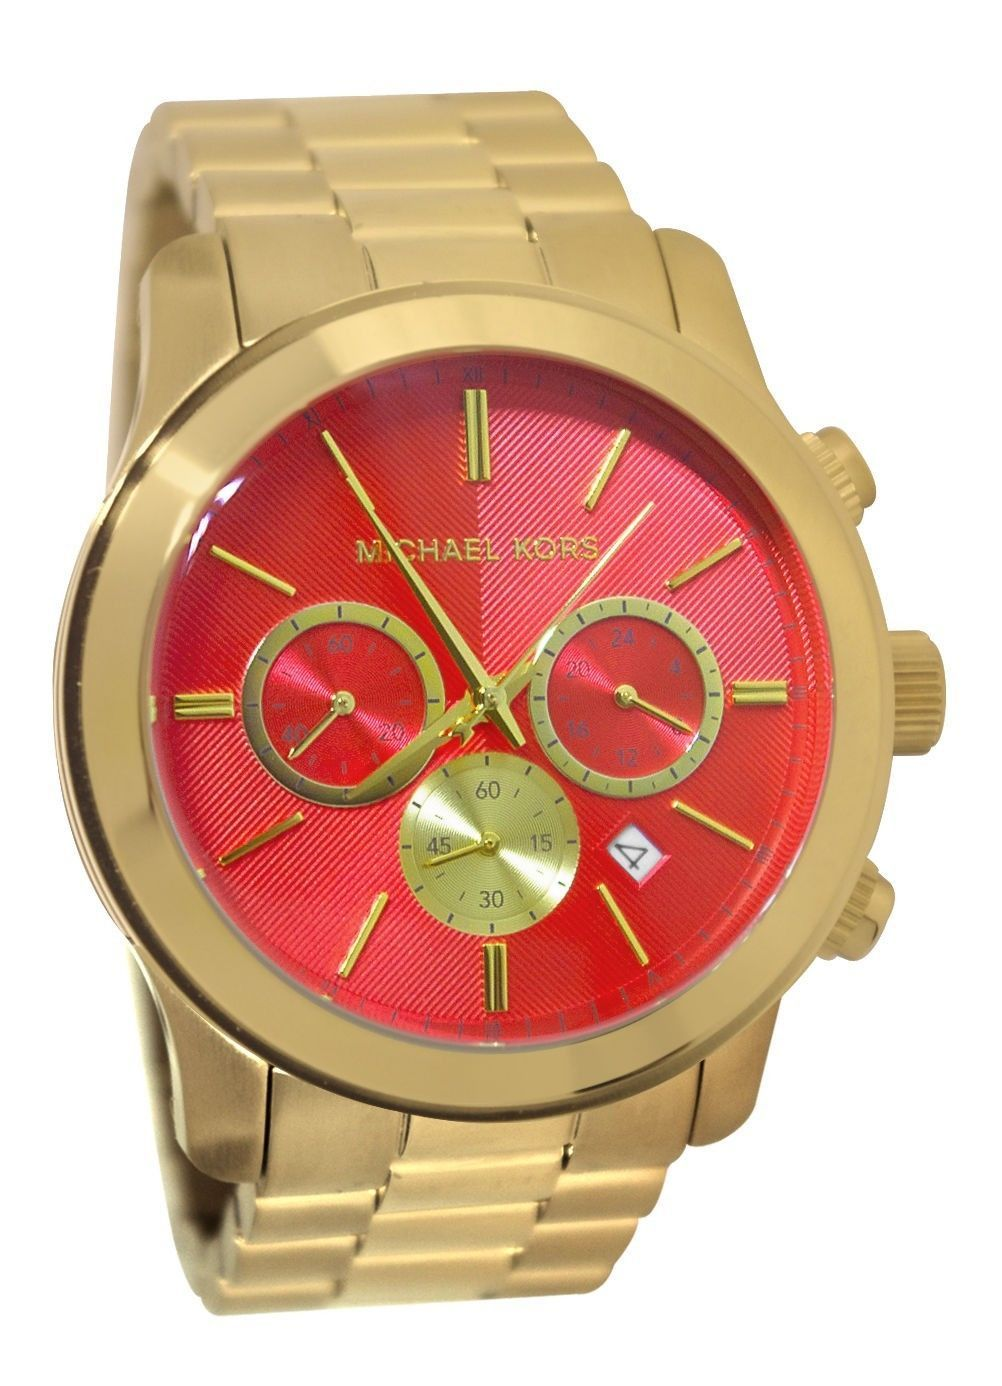 3f1fdd0f8 100% AUTHENTIC MICHAEL KORS MK5930 ORANGE FACE GOLD WOMENS RUNWAY WATCH!